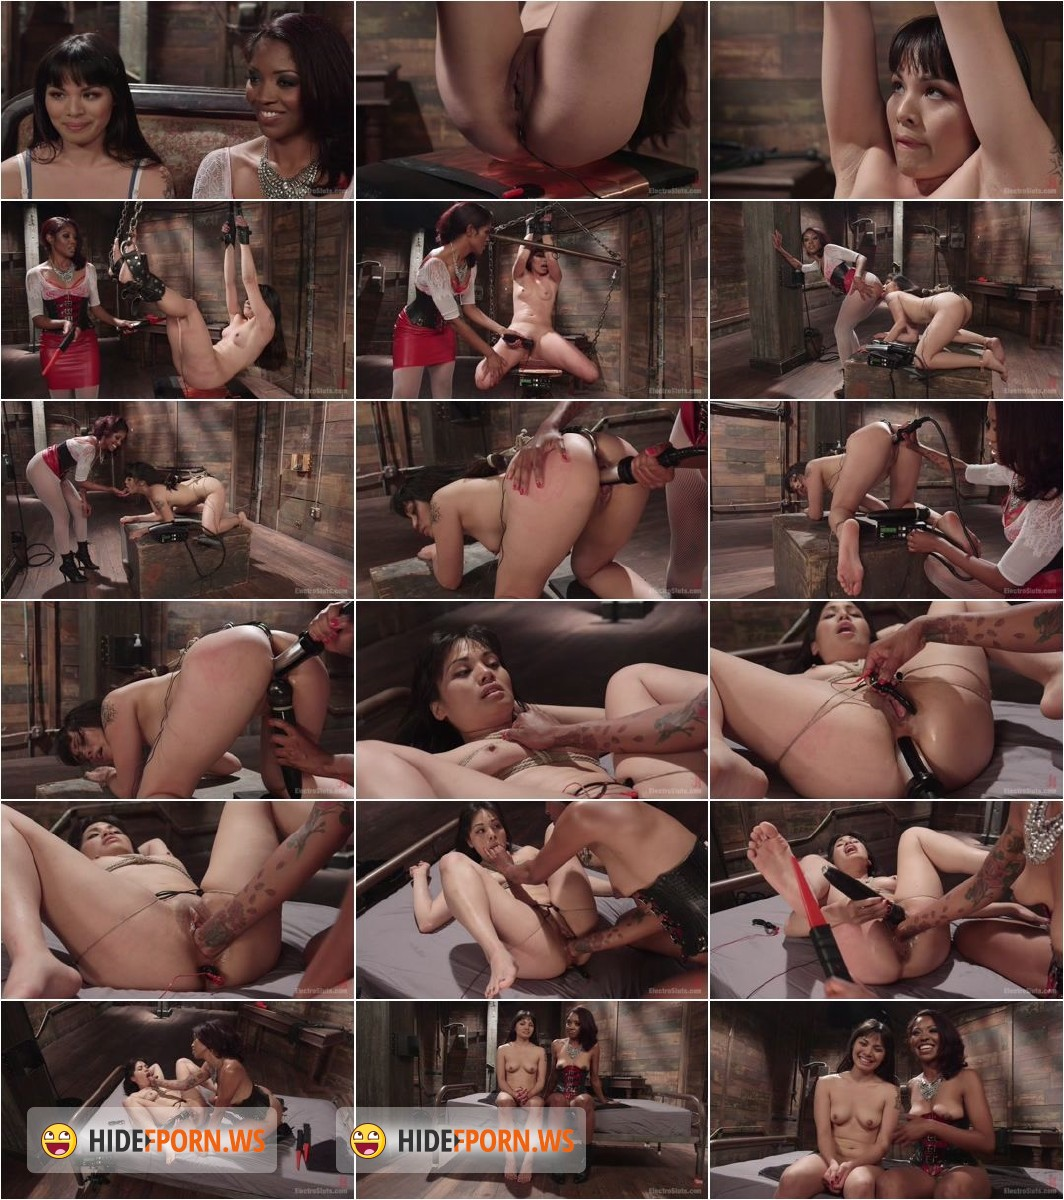 ElectroSluts.com/Kink.com - Milcah Halili, Lotus Lain - Intense Anal Electro Domination: Tough Slut Pushed to Her Limits! [HD 720p]